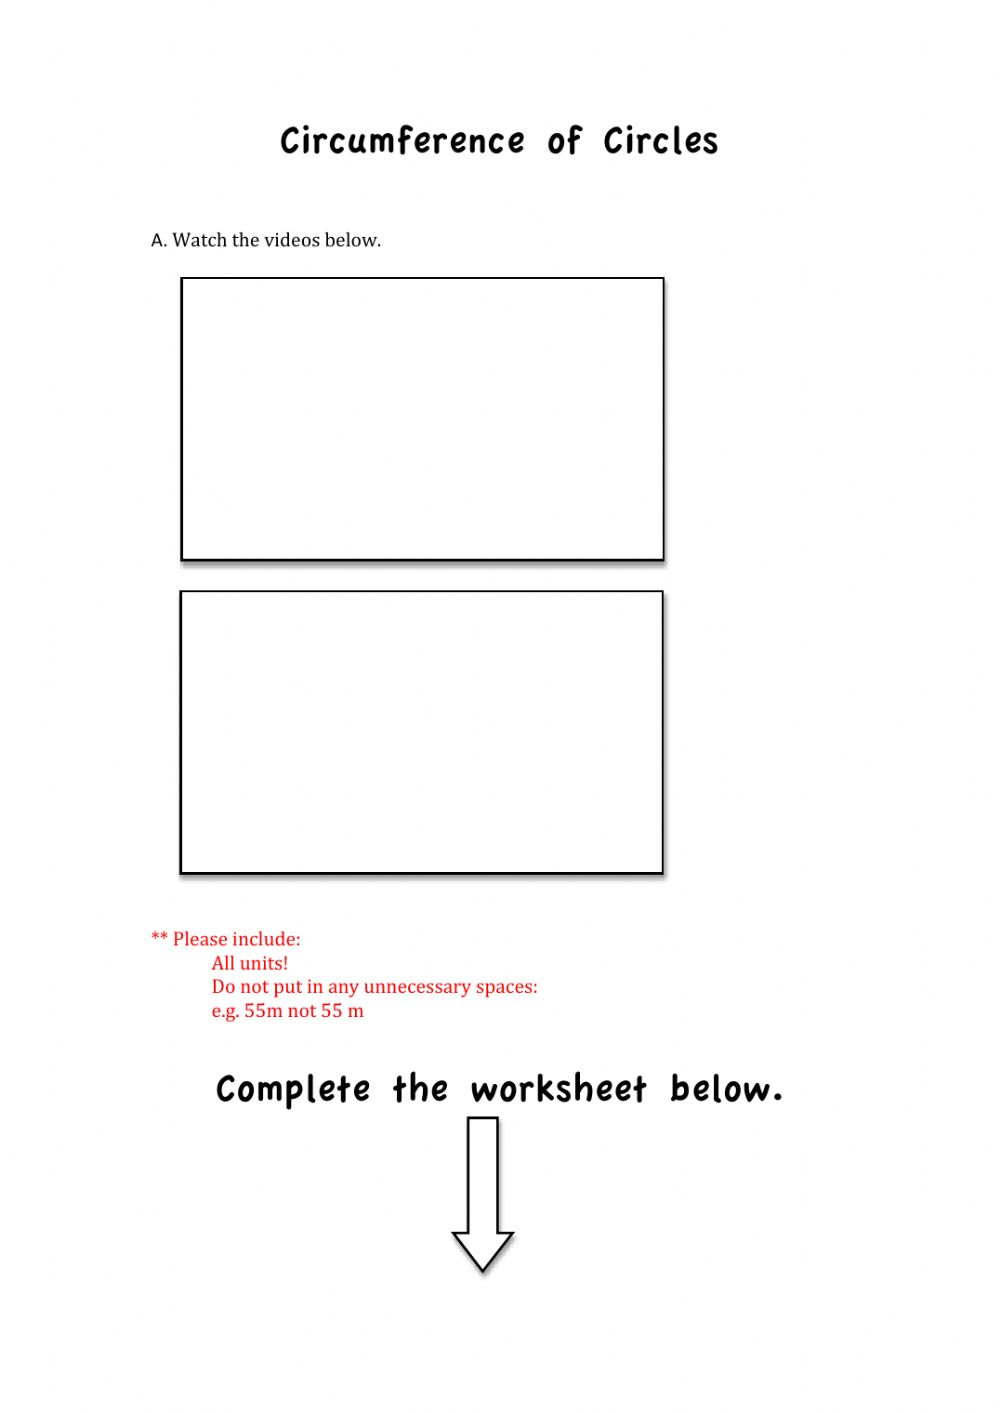 medium resolution of FInding the Circumference of a Circle worksheet